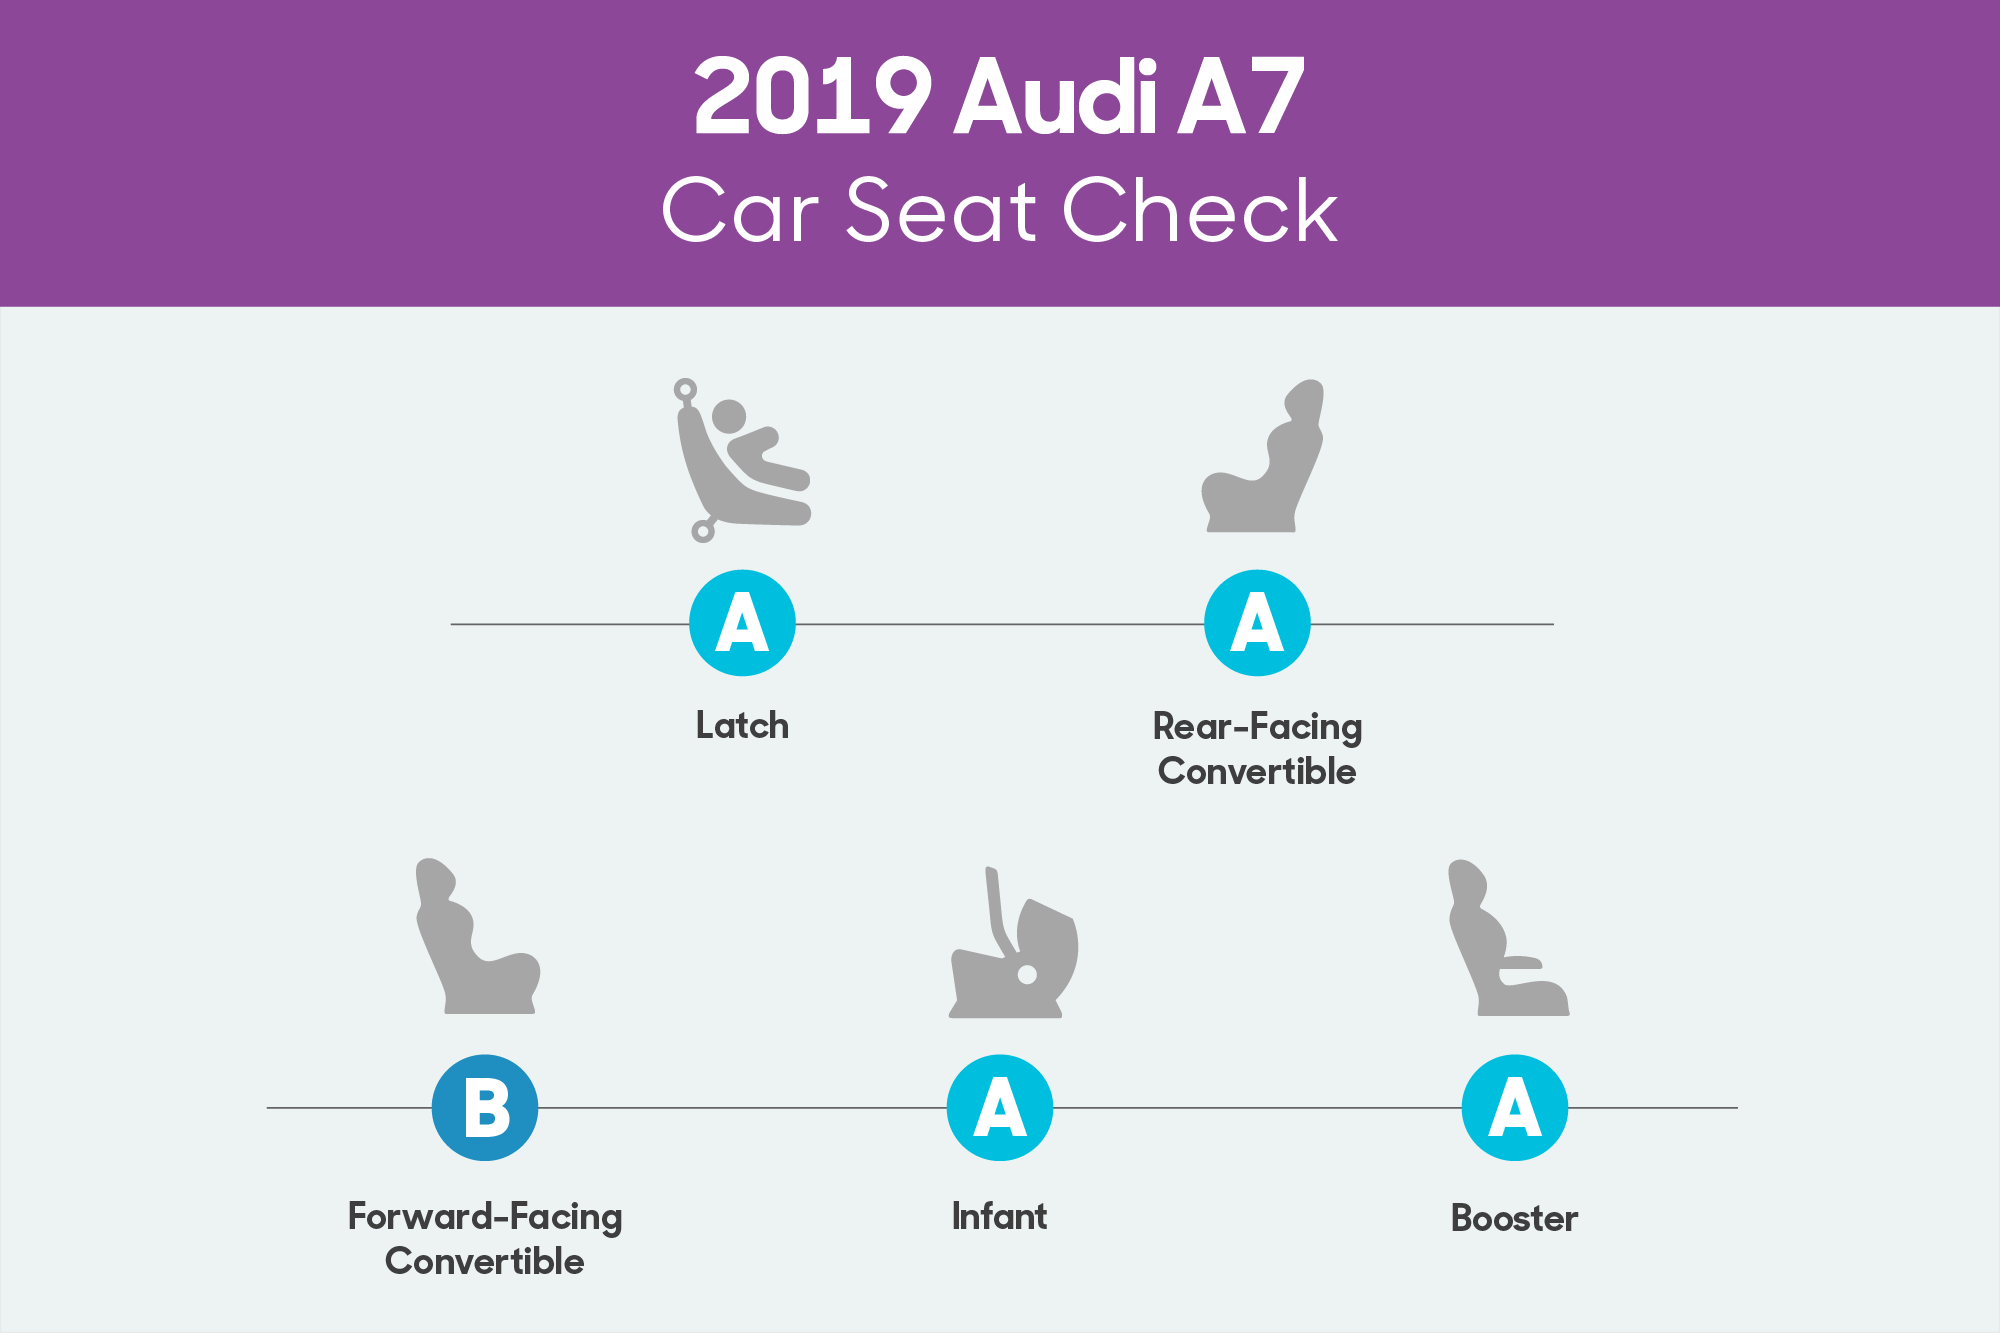 audi-a7-2019-car-seat-check-scorecard.png